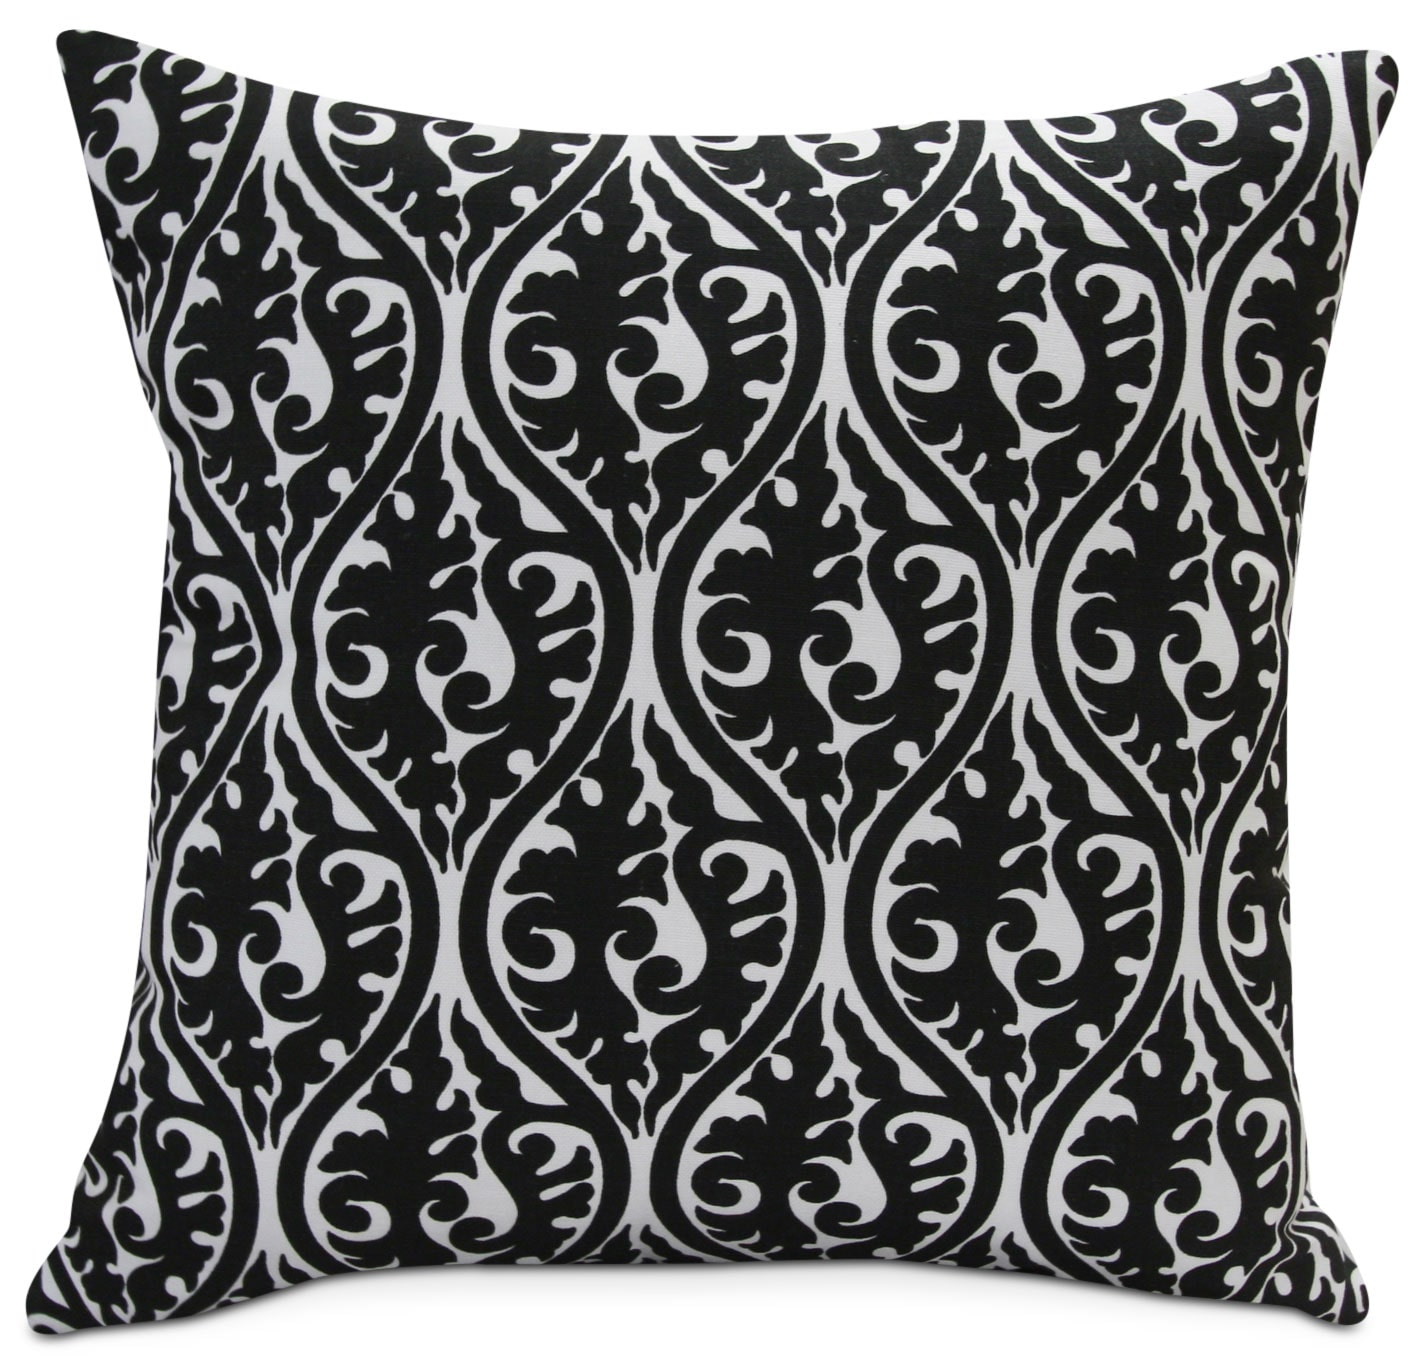 Trav Black and White Accent Pillow